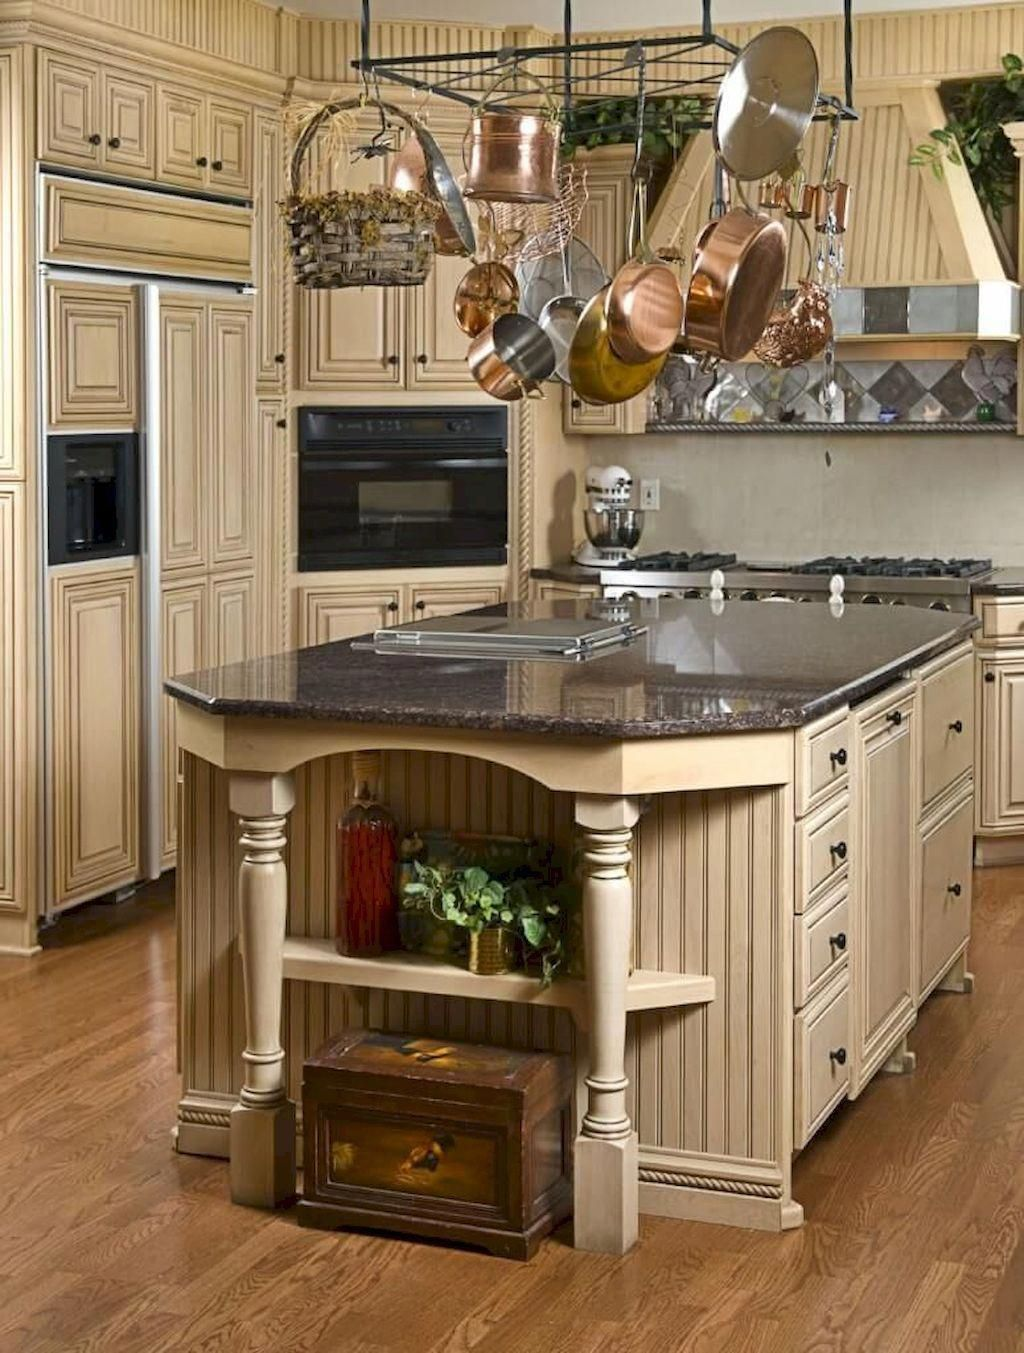 Antique Kitchen Cabinets Antiquekitchencabinets French Country Kitchen Cabinets Antique White Kitchen Country Kitchen Designs